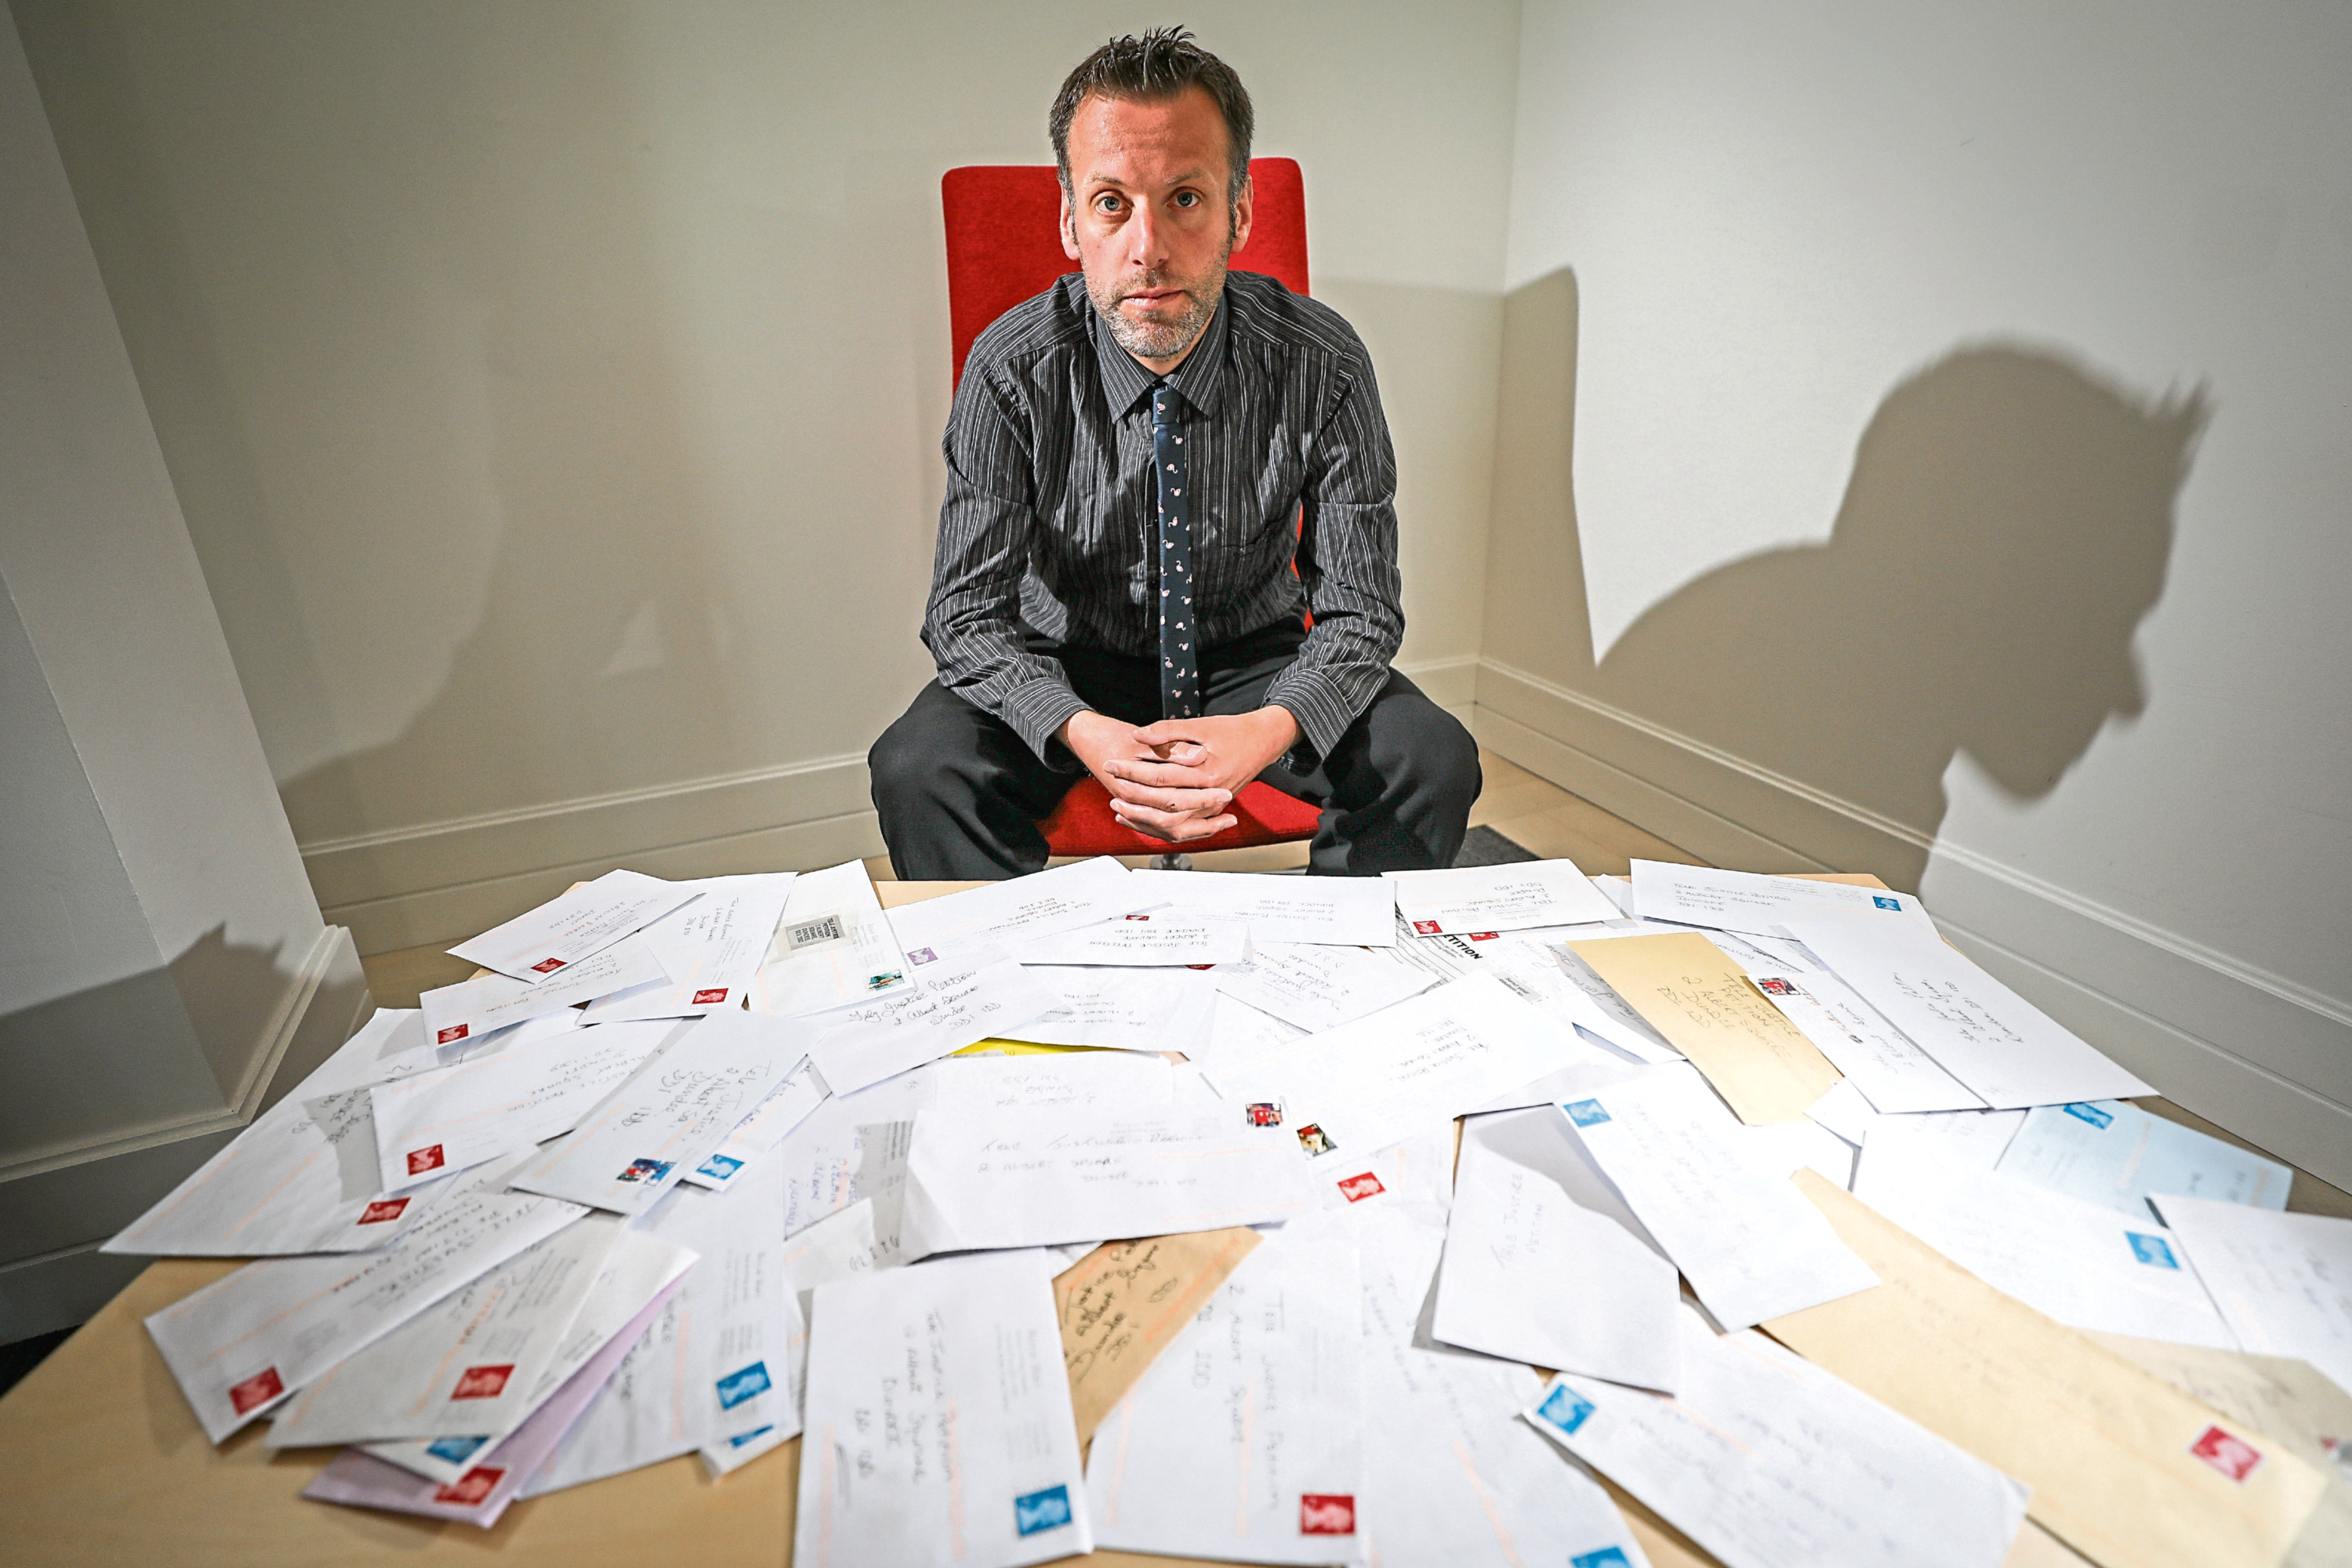 Tele editor Dave Lord with some of the letters received through the post, backing the Our Kids Need Justice campaign.